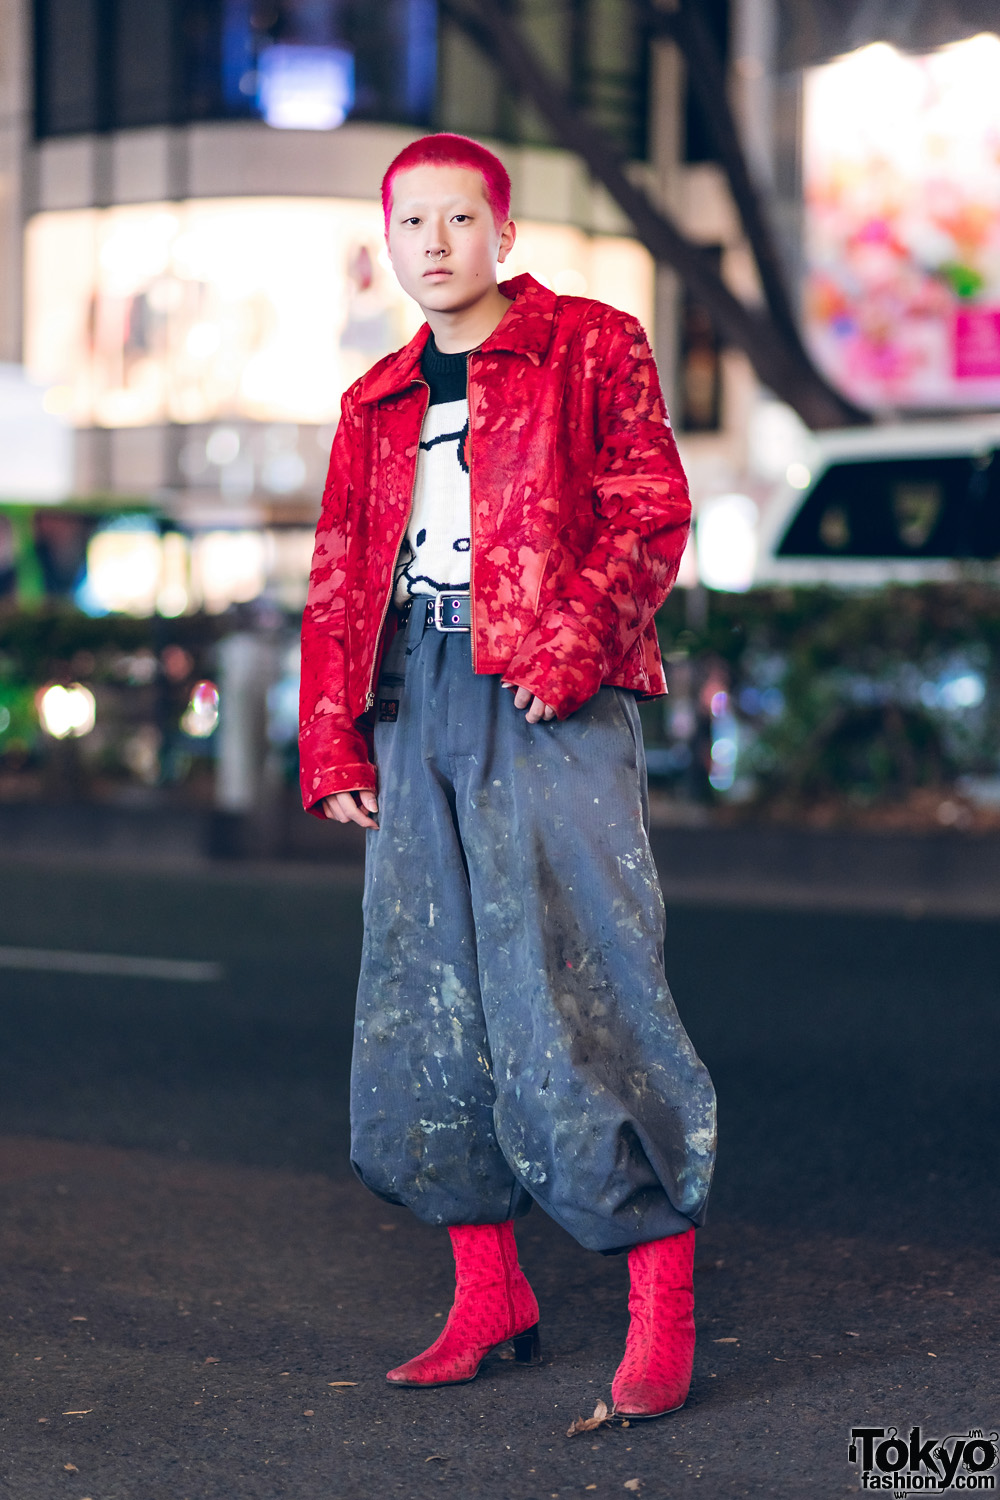 Harajuku Street Style w/ Red Hair, Japanese Nikka Pokka Pants, Contena Store Jacket, Hello Kitty Sweater & Red Boots